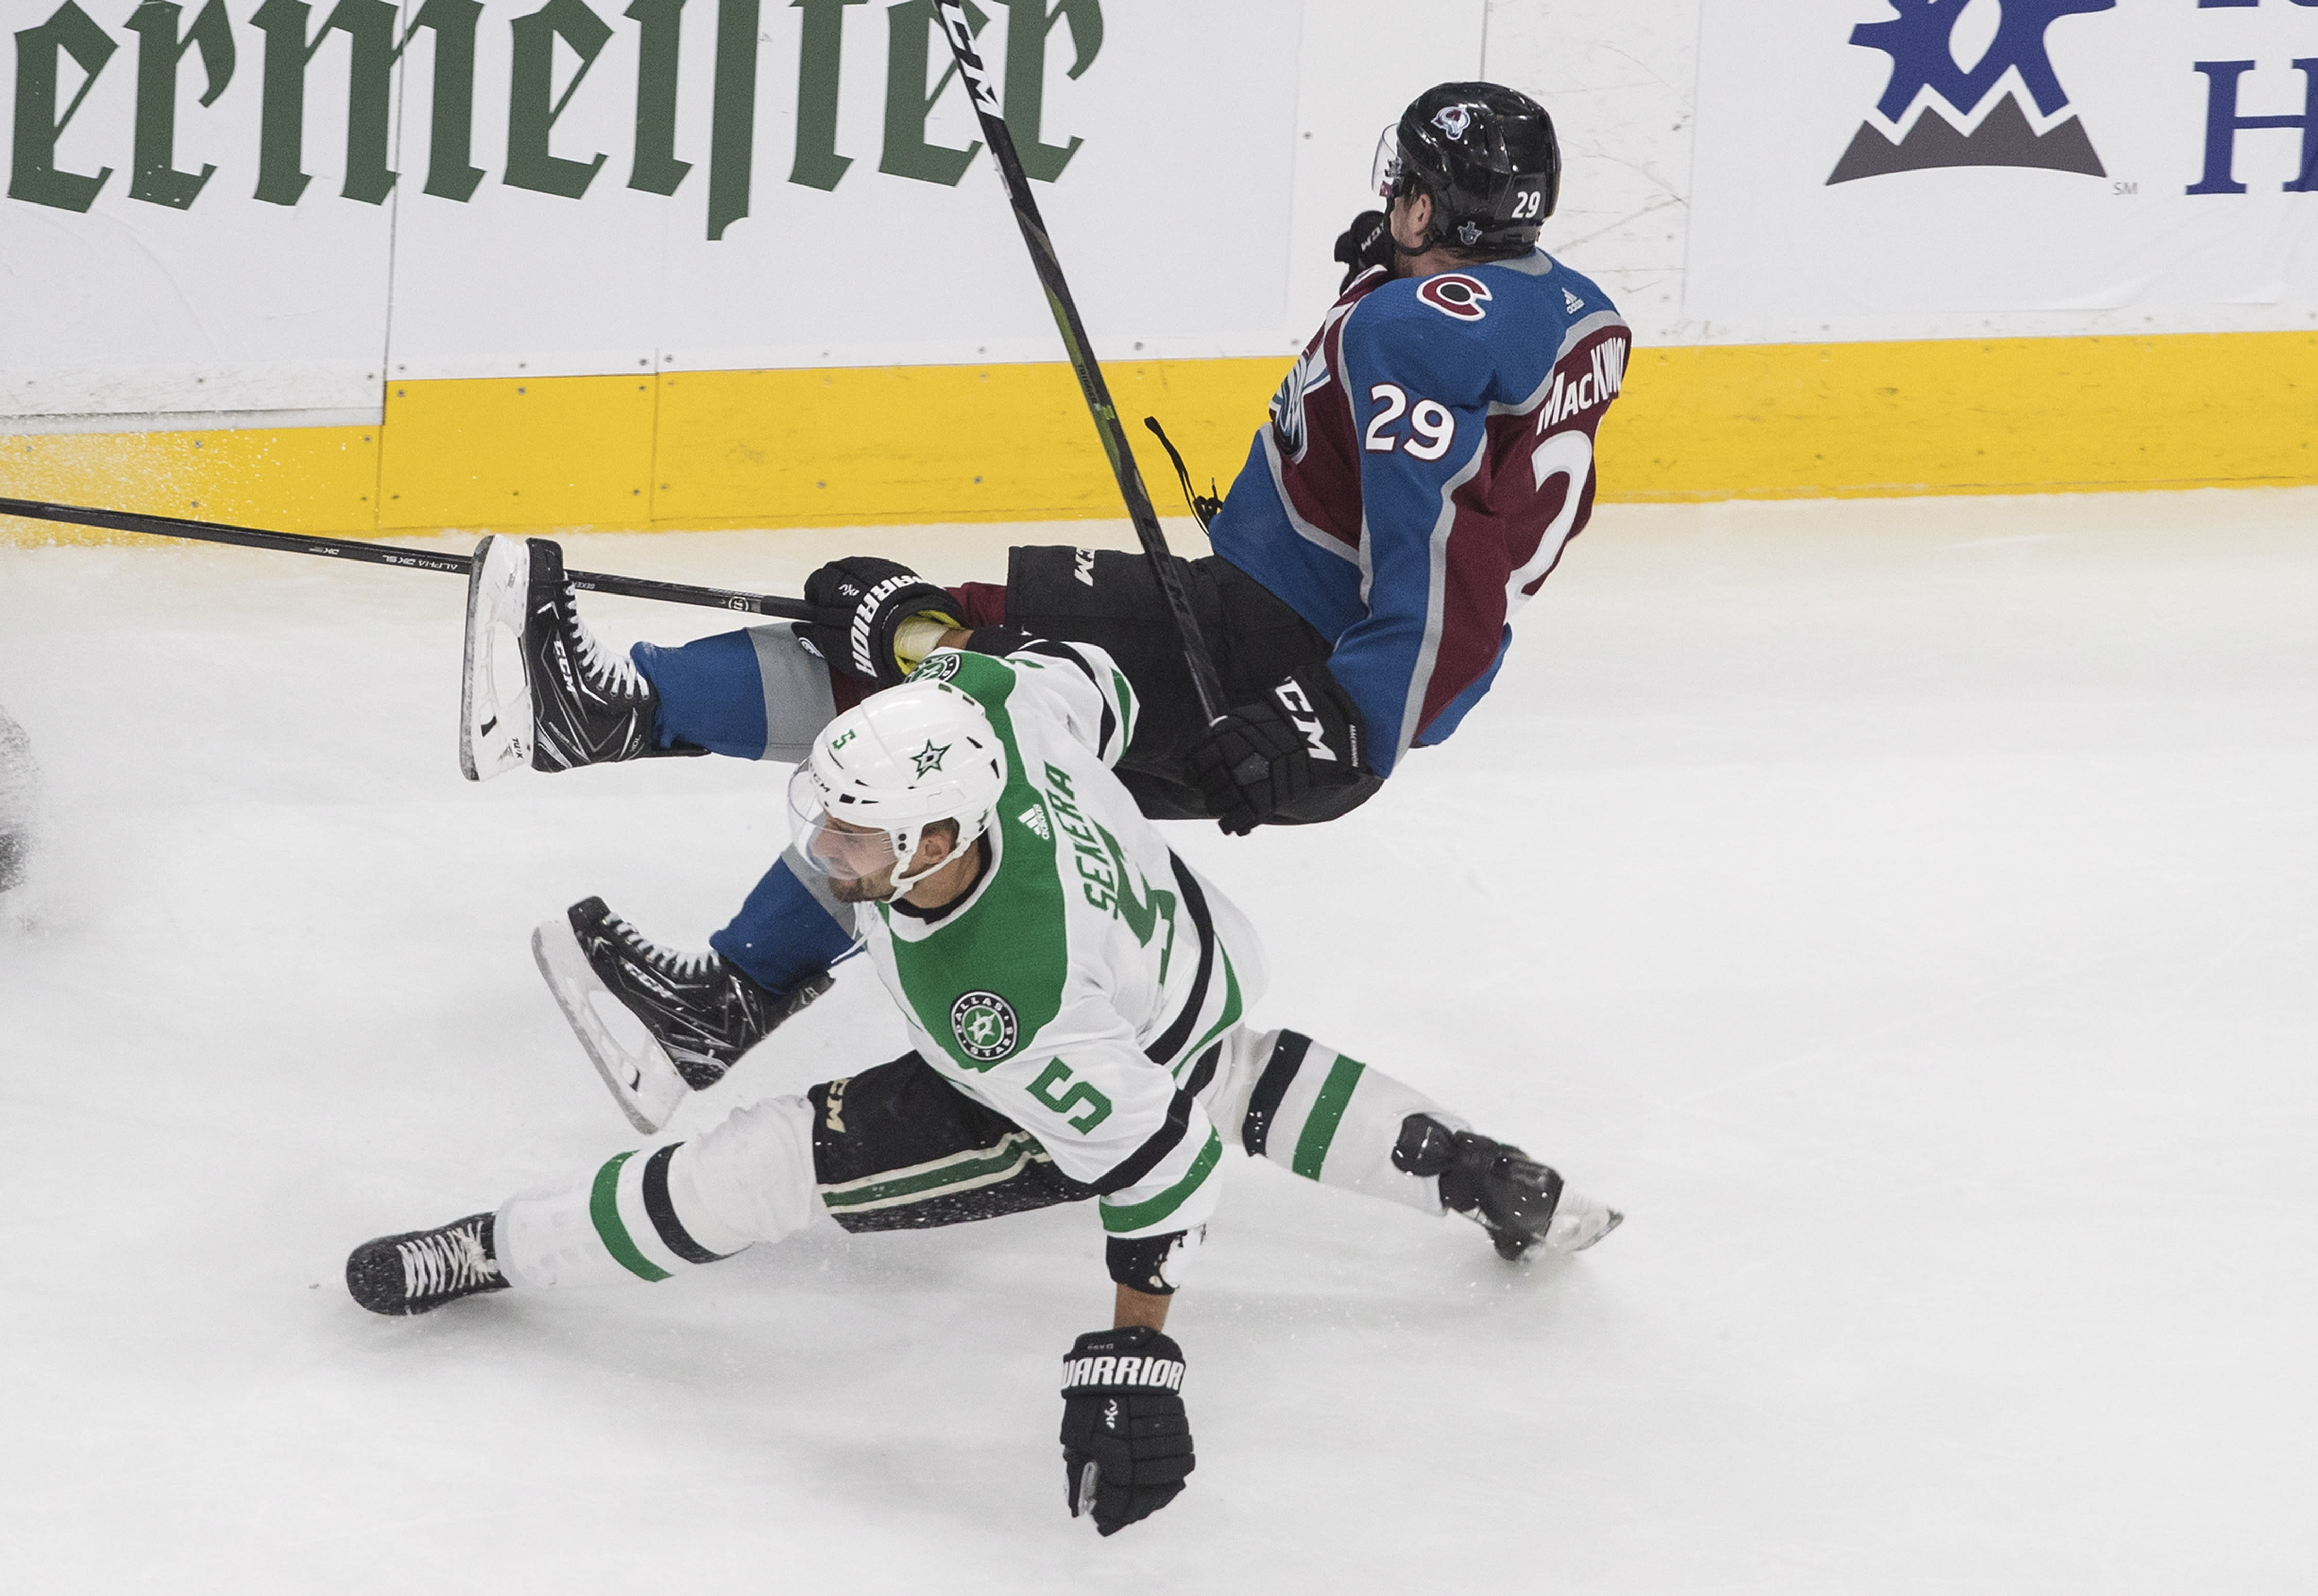 Colorado Avalanche center Nathan MacKinnon (29) is checked by Dallas Stars defenseman Andrej Sekera (5) during third-period NHL Western Conference Stanley Cup playoff hockey game action in Edmonton, Alberta, Saturday, Aug. 22, 2020. (Jason Franson/The Canadian Press via AP)